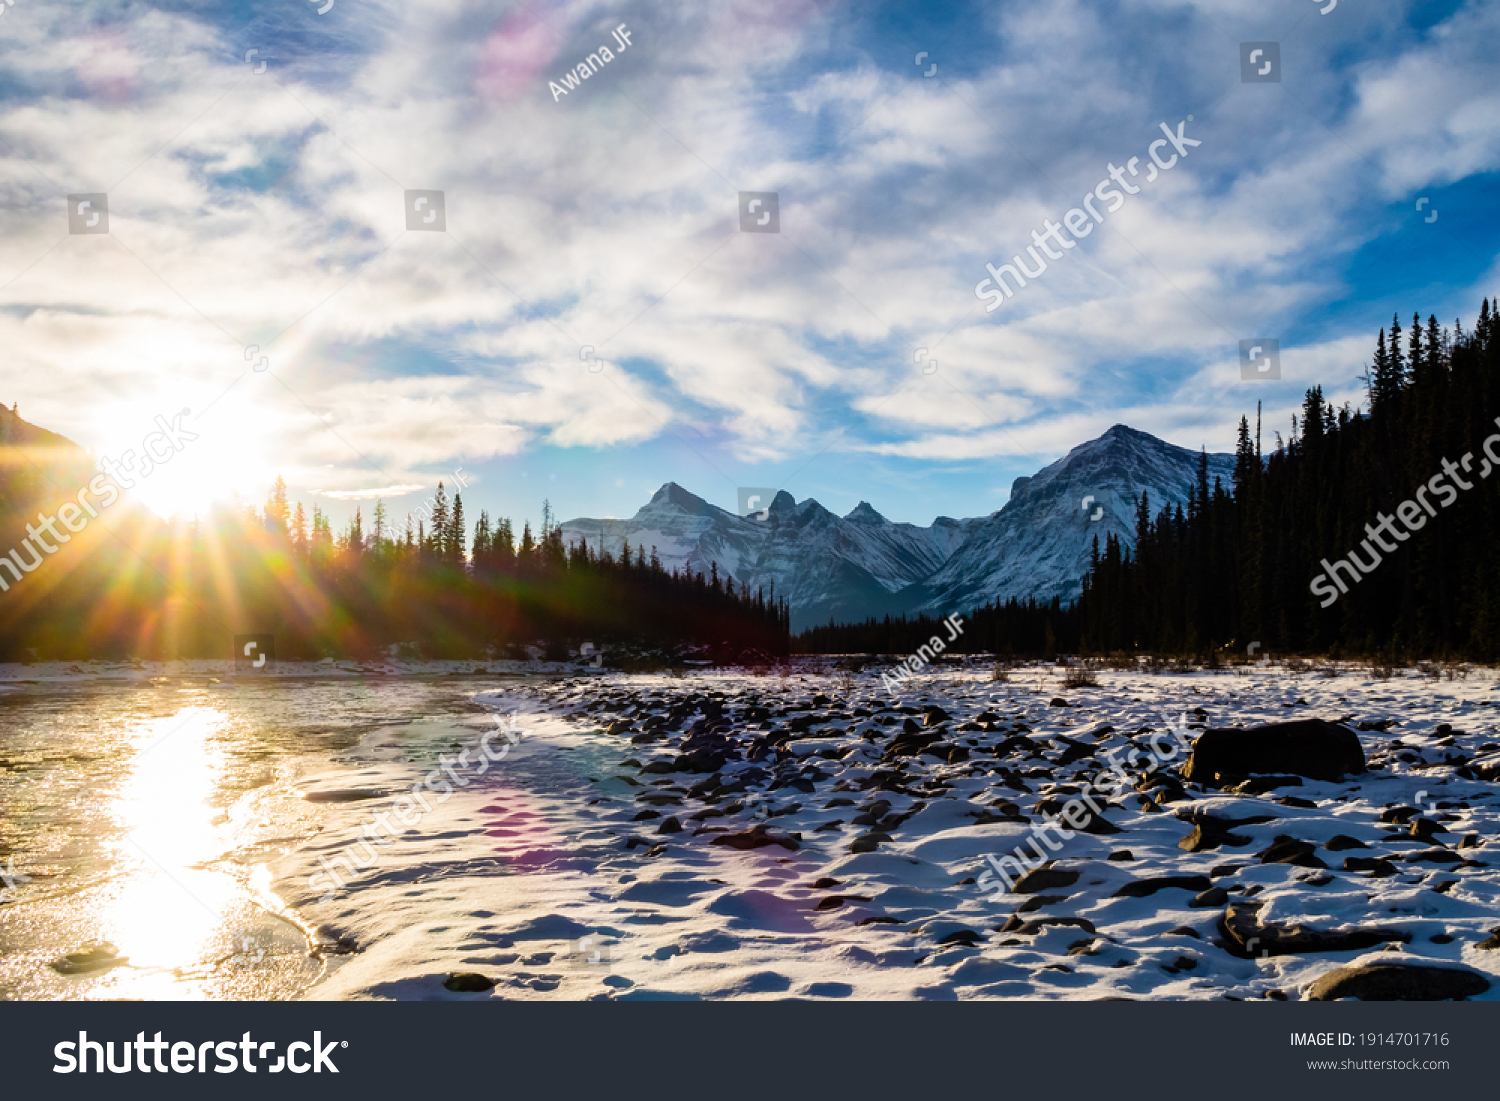 stock-photo-beautiful-morning-view-of-th